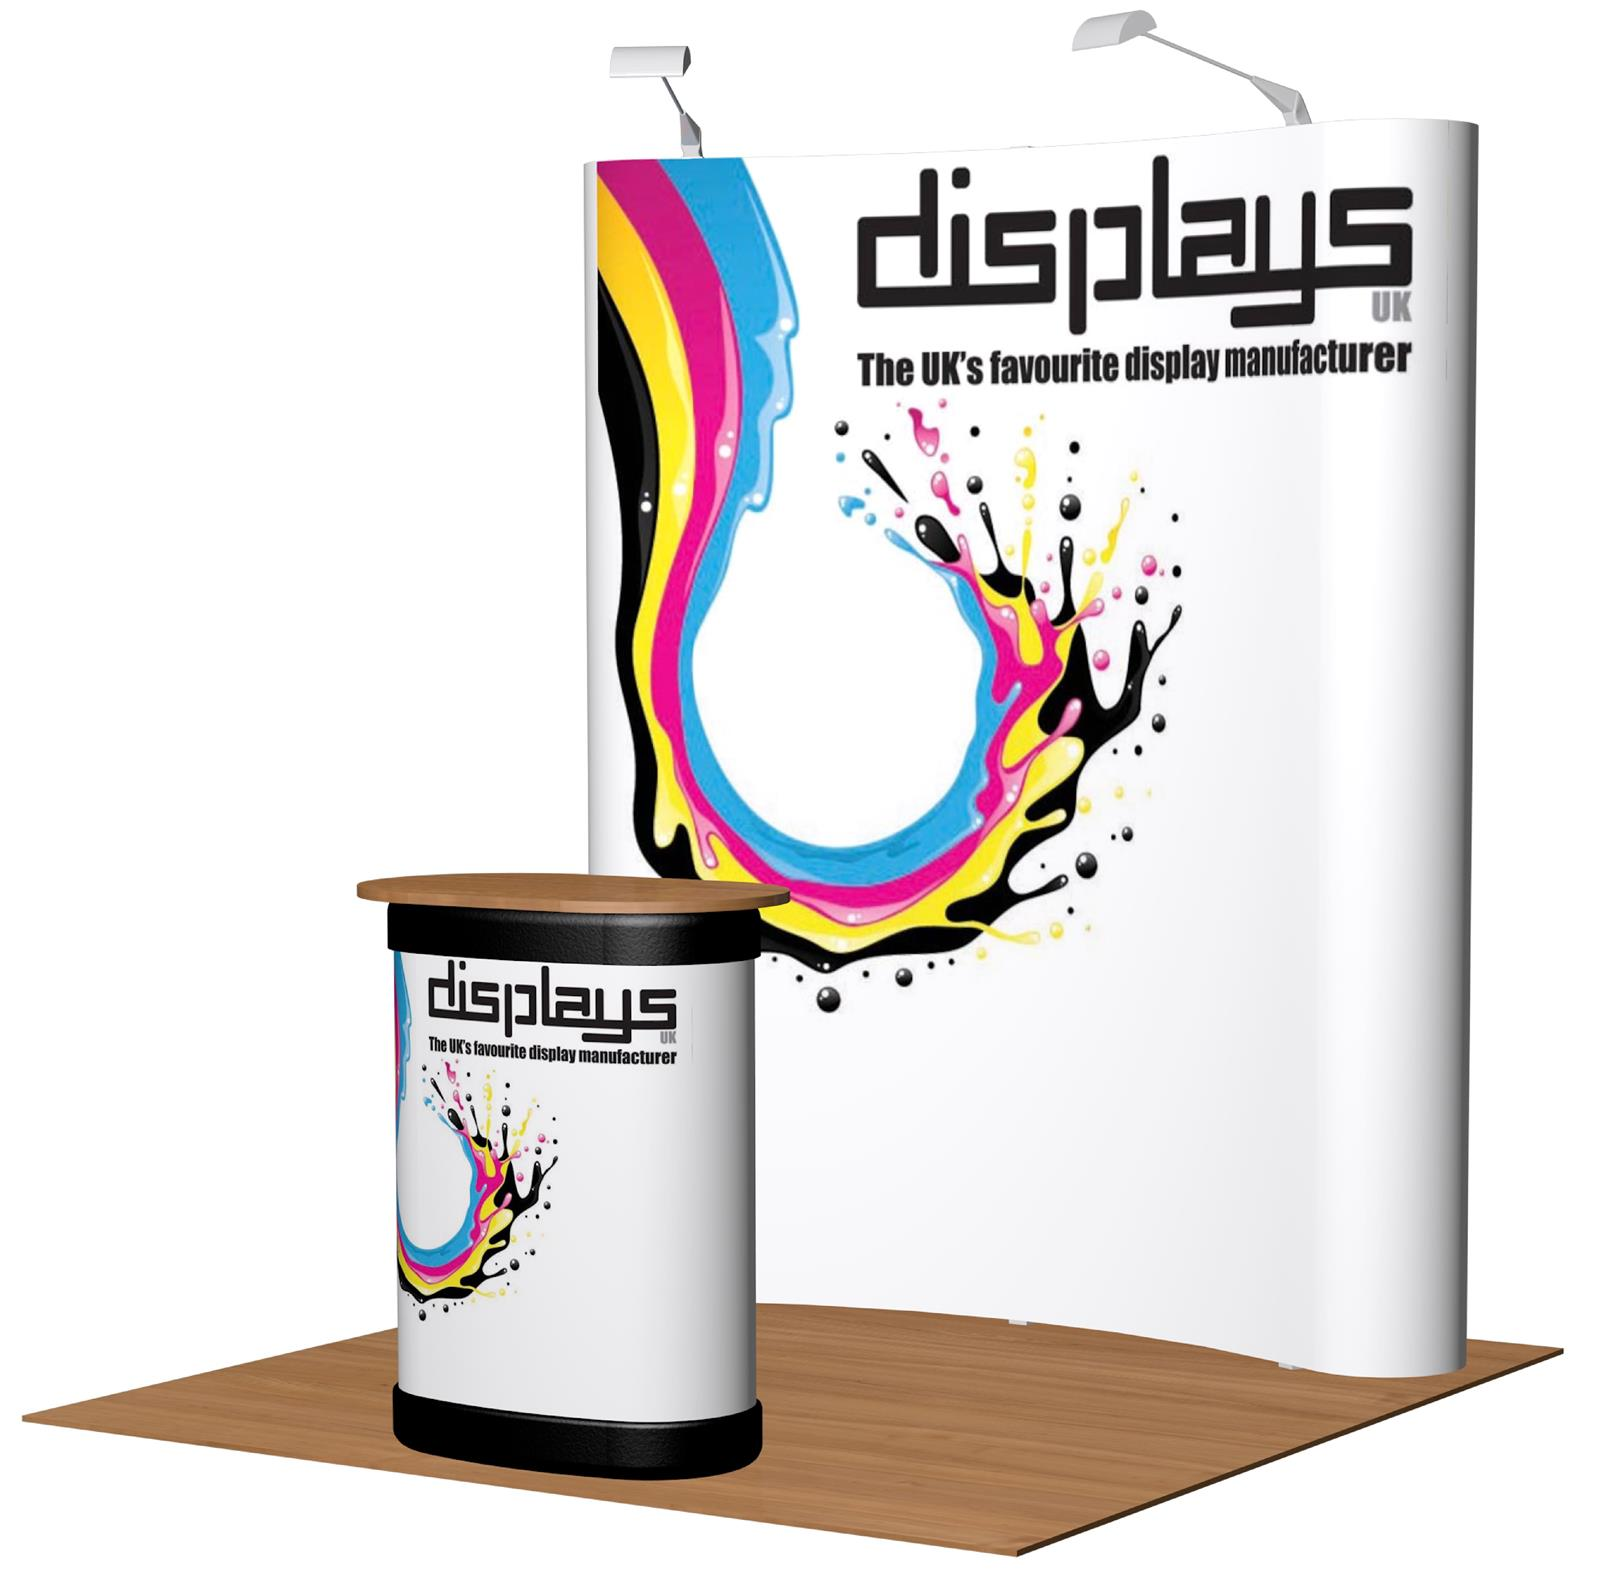 3x2 Visage Premium Pop Up Exhibition Stand Display